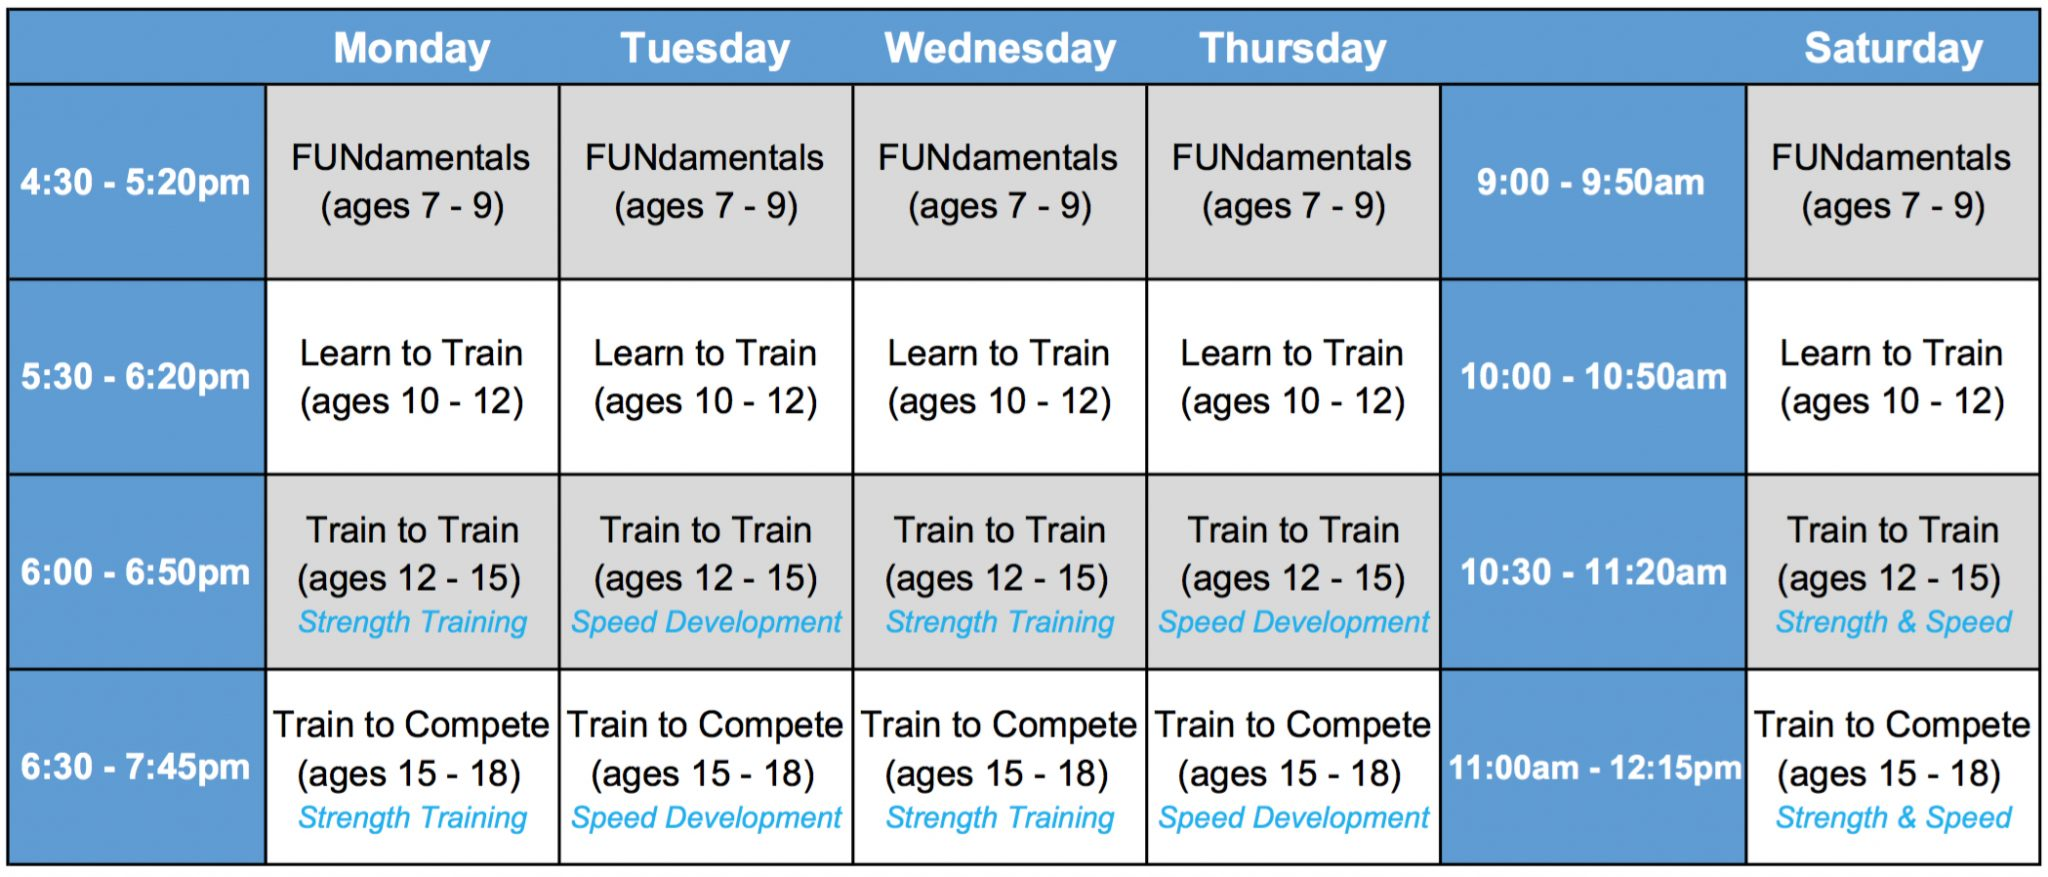 New Youth Training Schedule Begins June 12th!